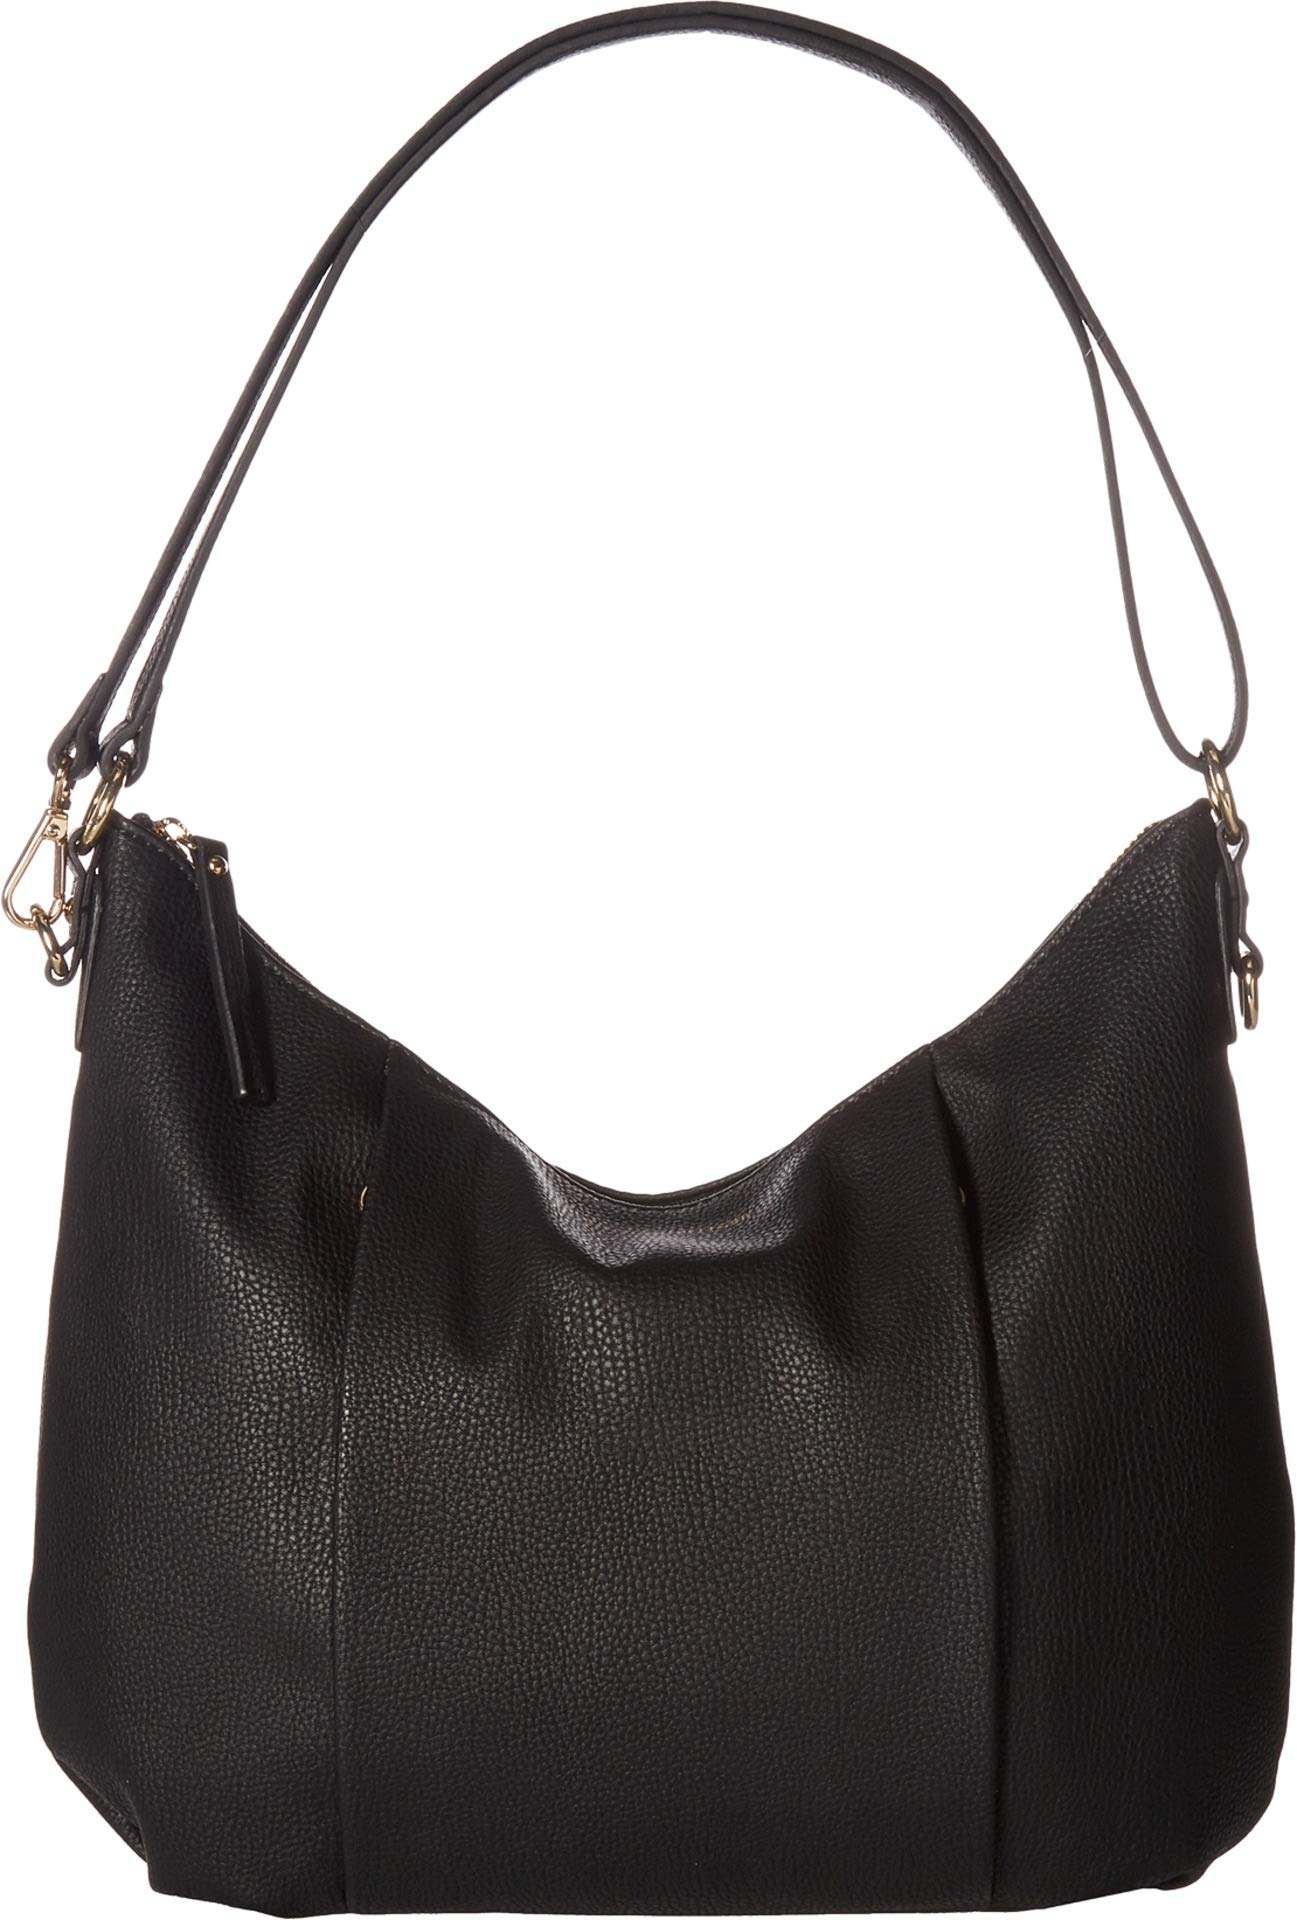 Tommy Hilfiger Women's Kelby Convertible Hobo Black One Size